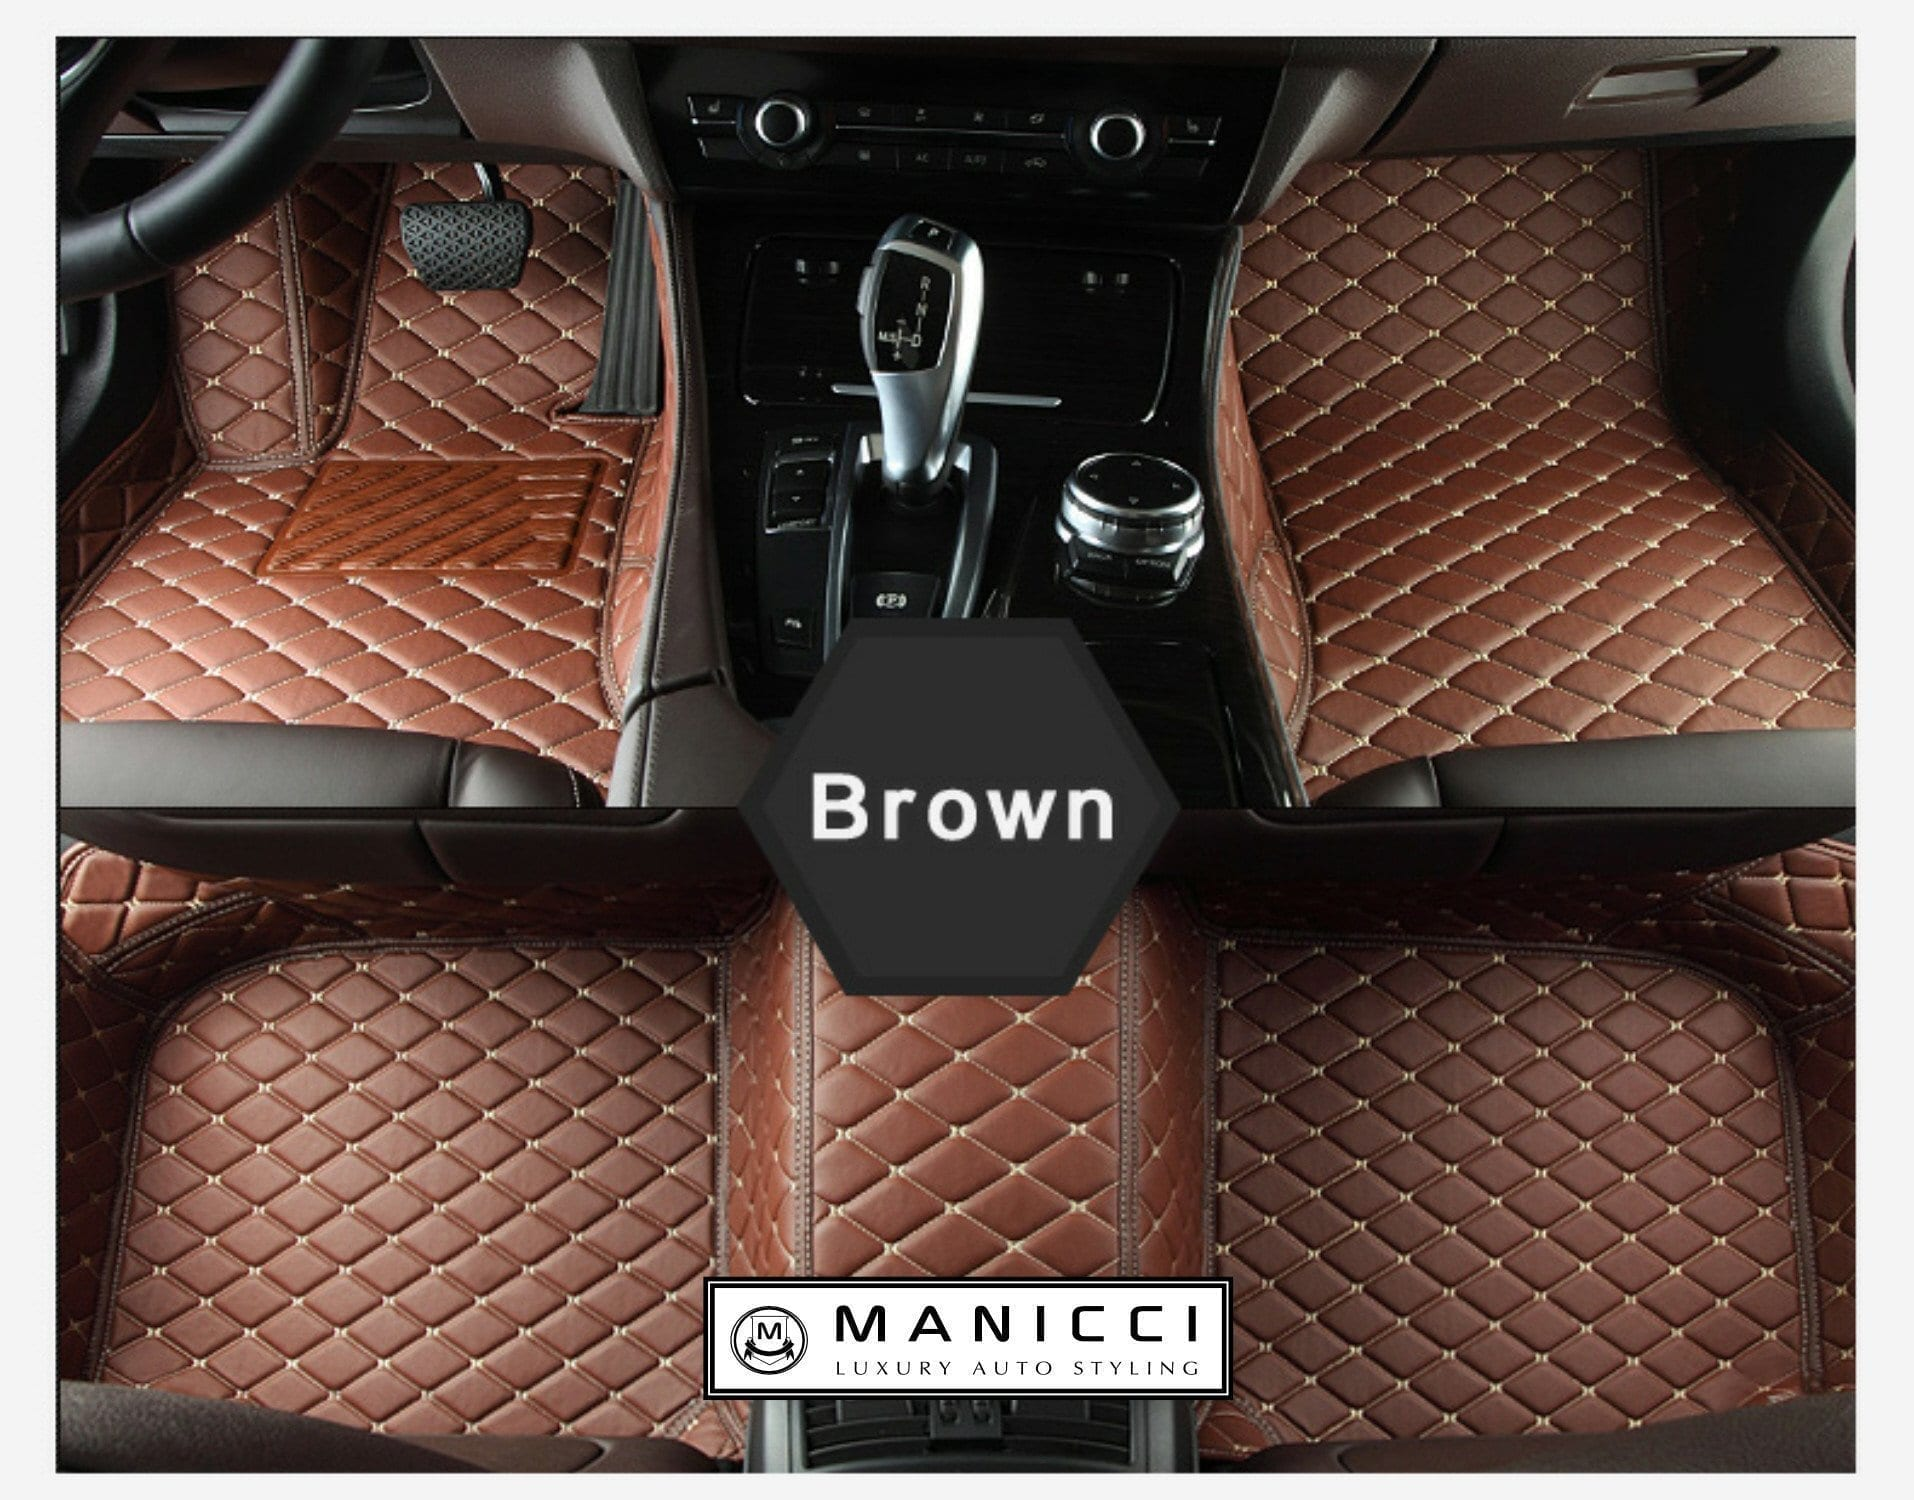 manicci luxury custom fitted car mats brown diamond free delivery usd manicci. Black Bedroom Furniture Sets. Home Design Ideas